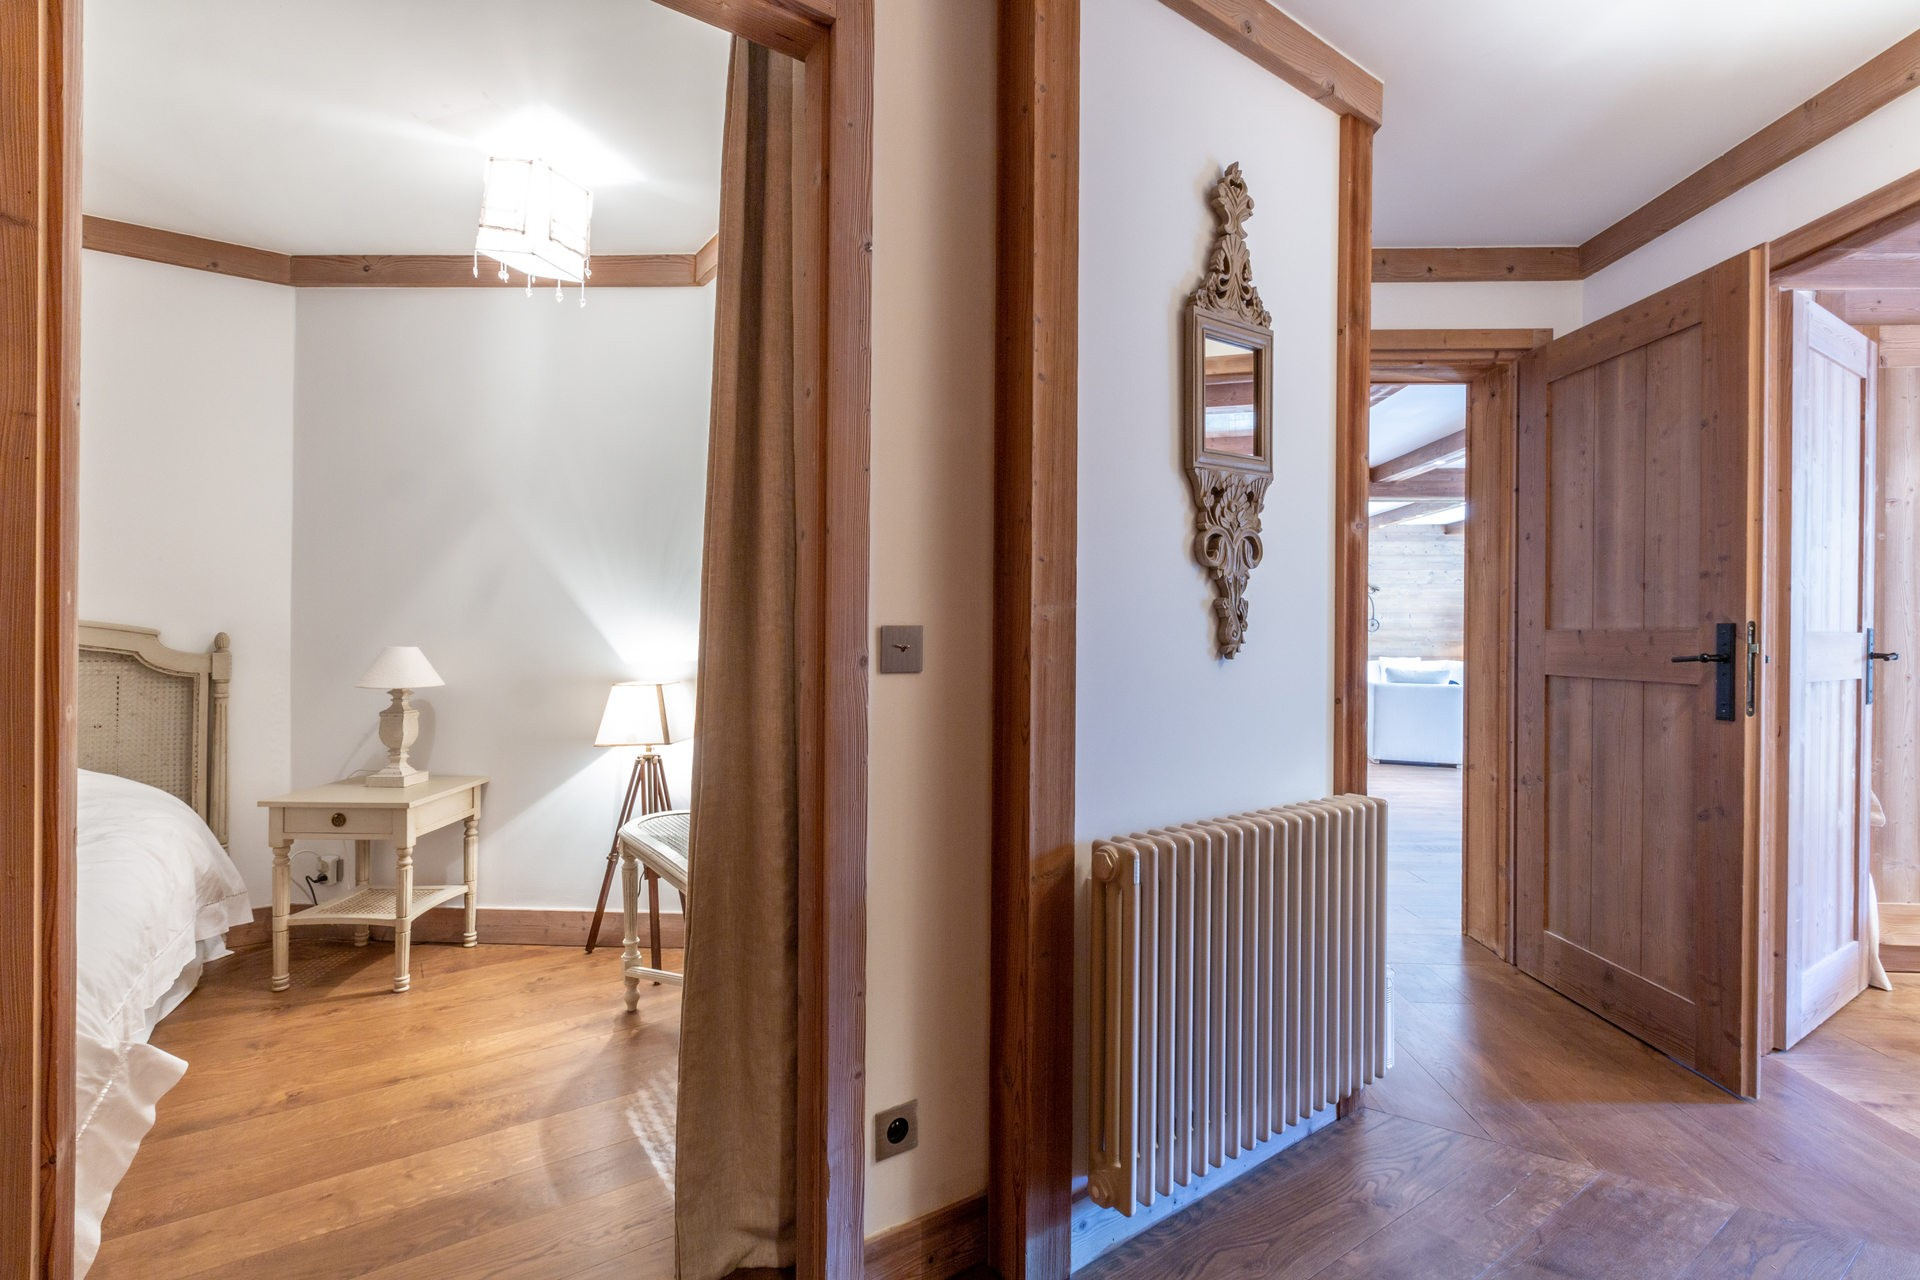 Val d'Isère Location Appartement Luxe Venturina Chambre 3